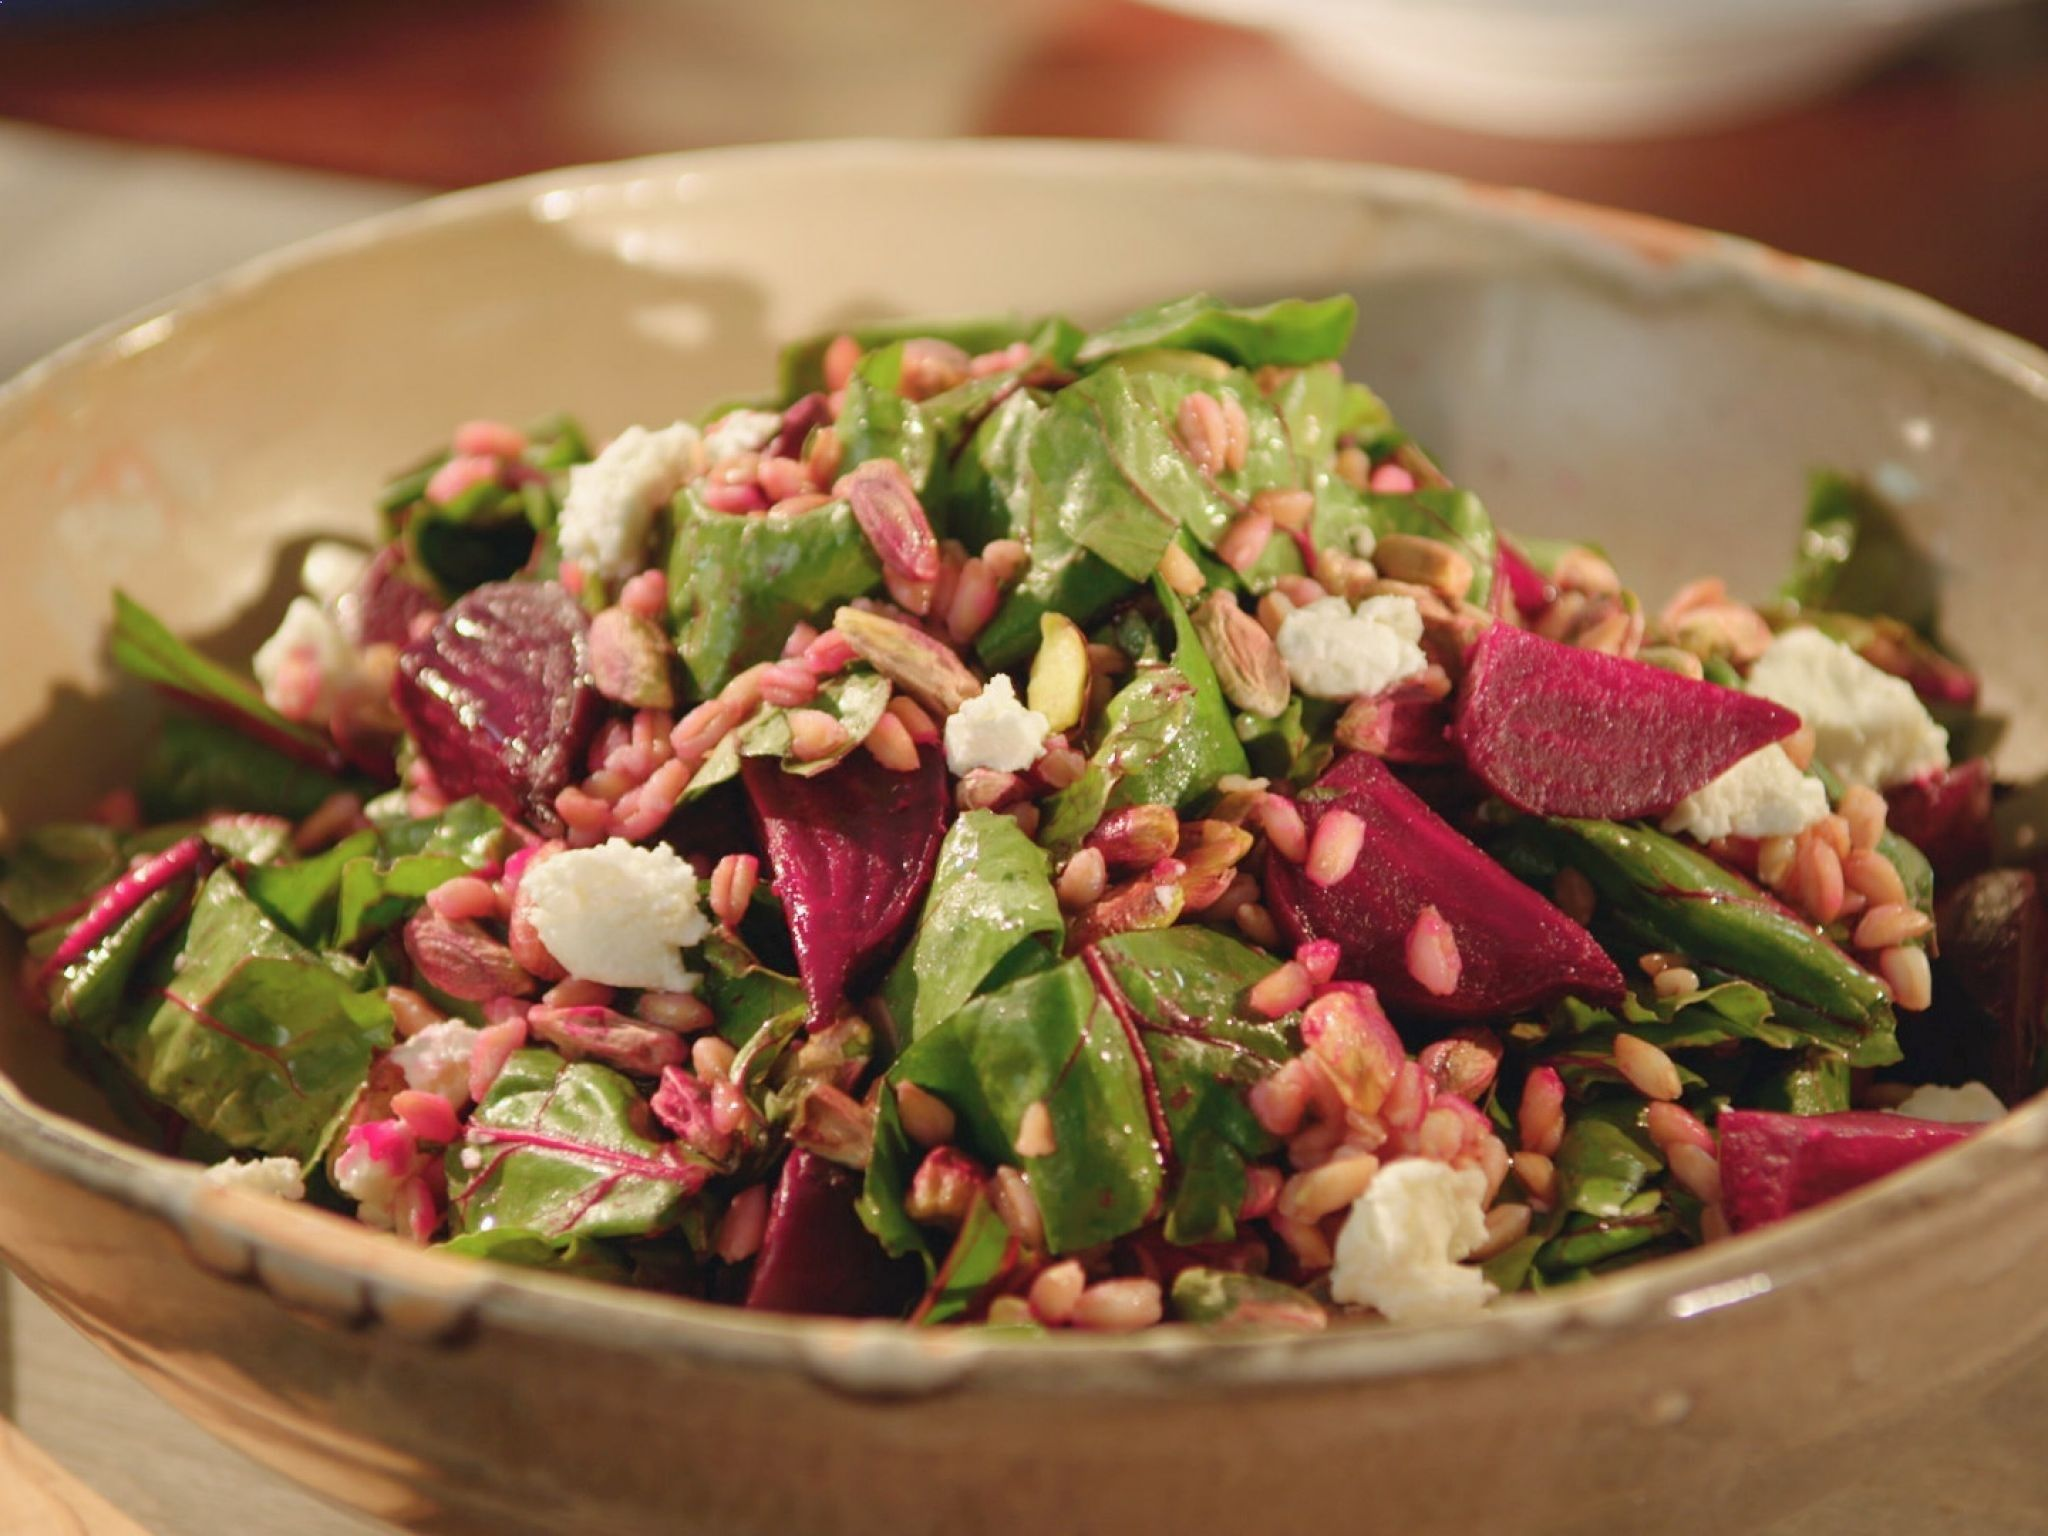 Farro Roasted Beet and Goat Cheese Salad recipe from Valerie